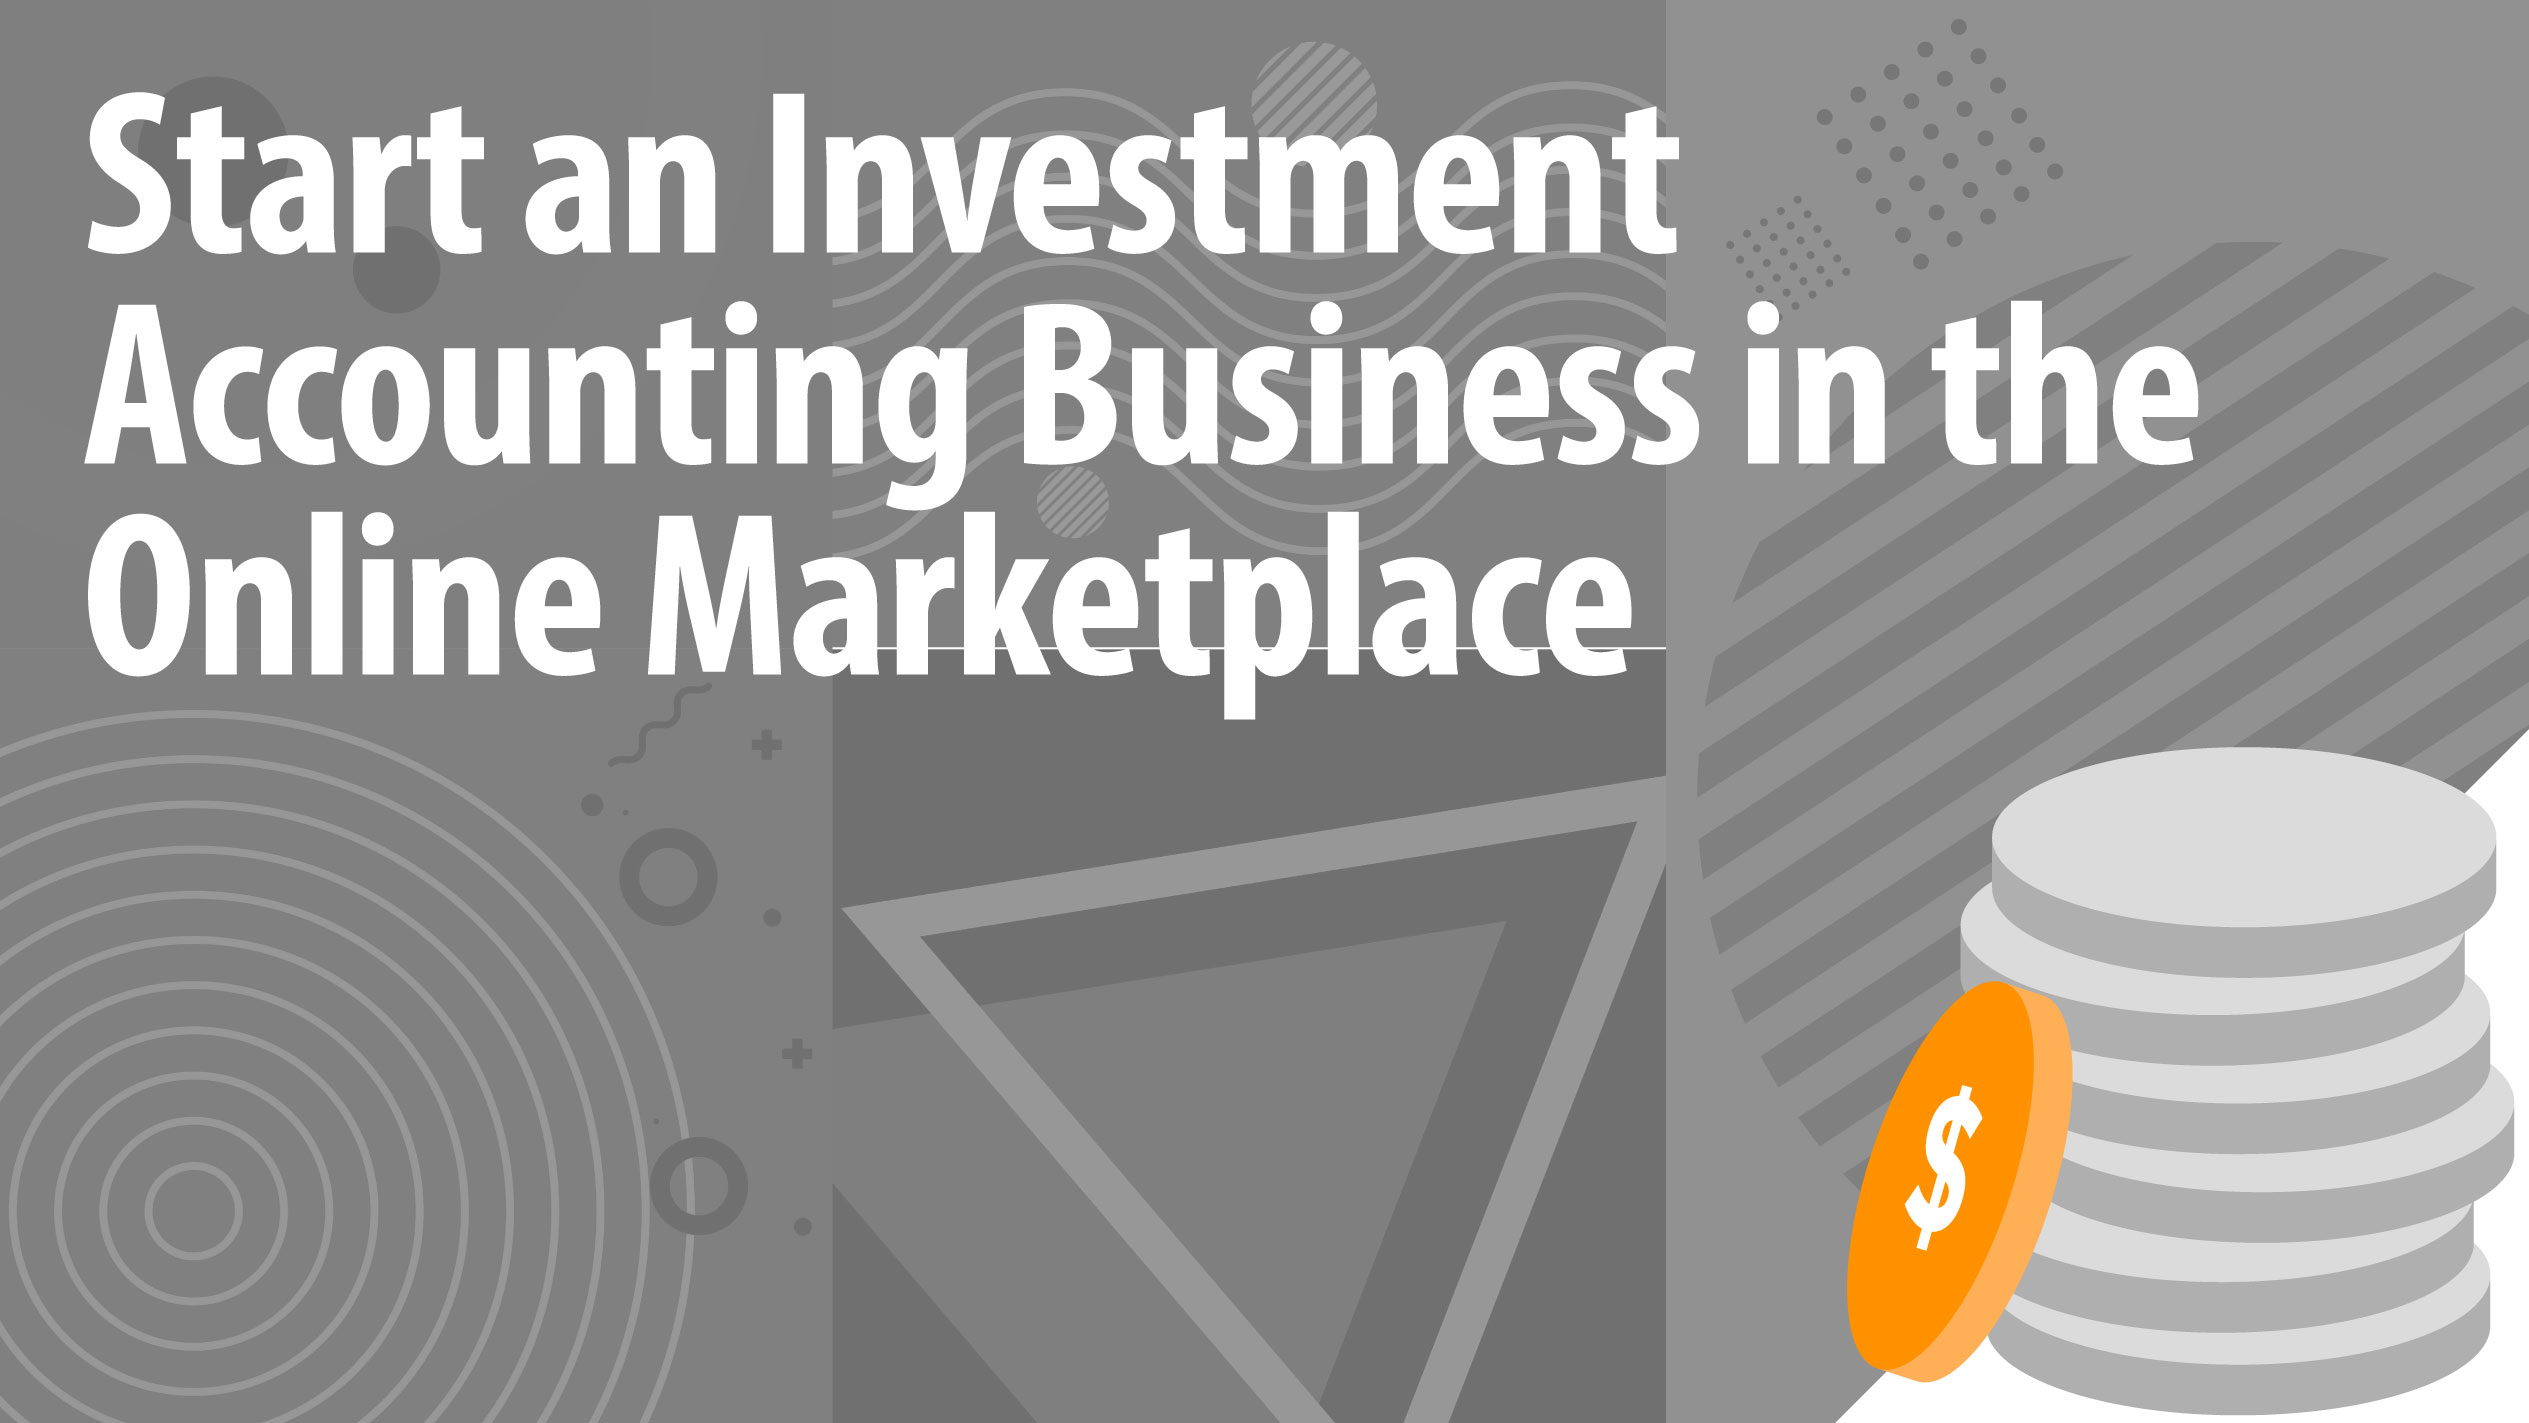 Start an Investment Accounting Business in the Online Marketplace